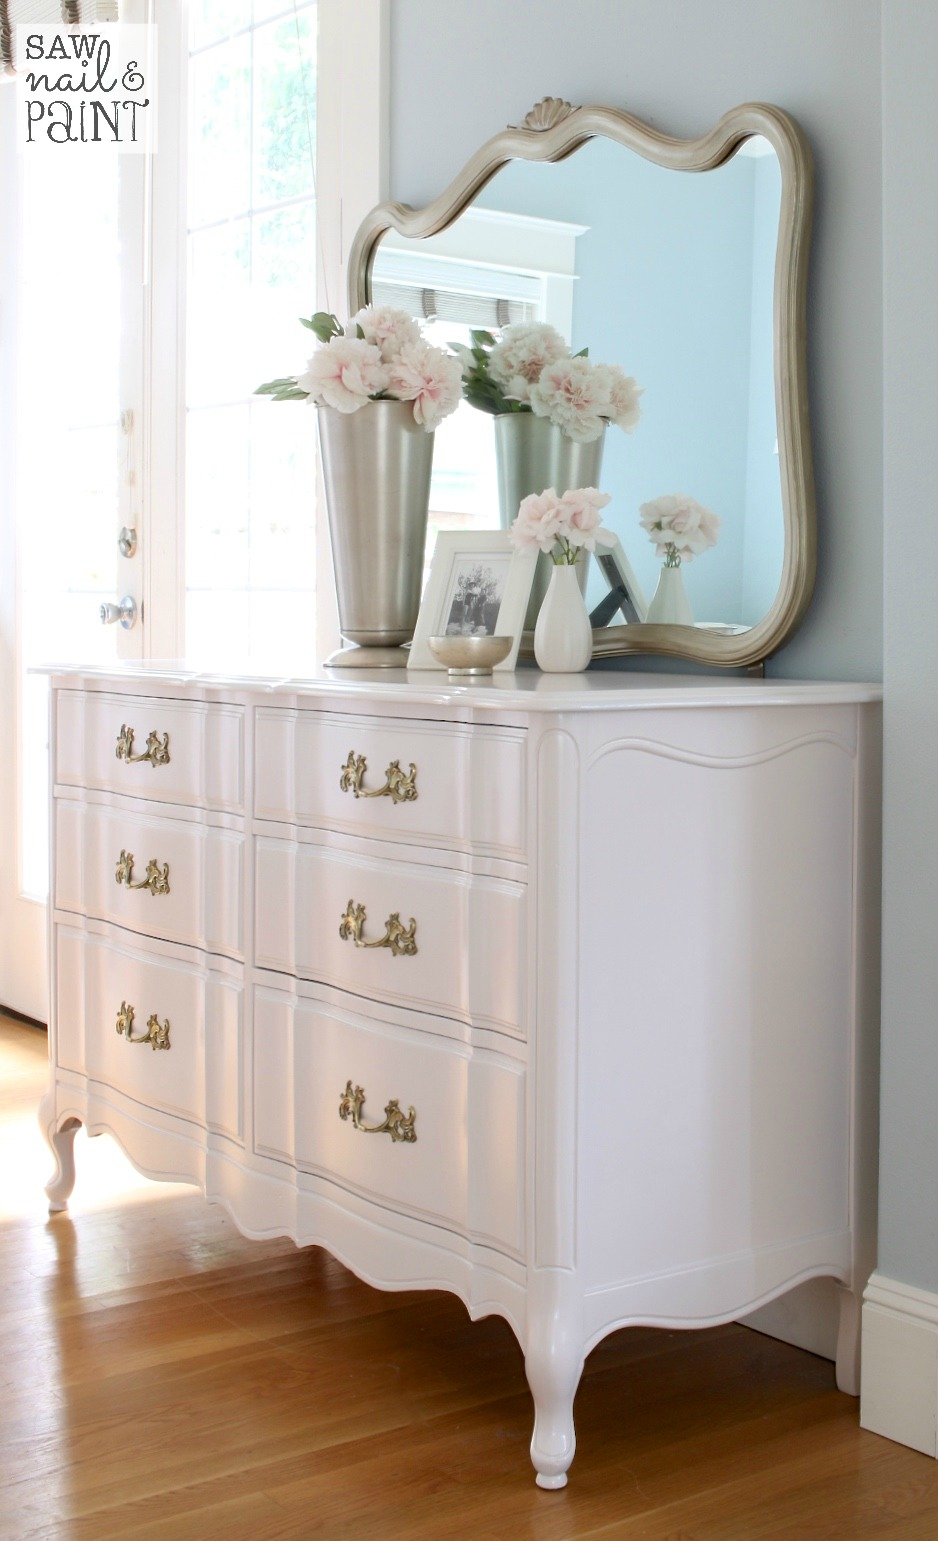 Silky Smooth French Provincial Dresser Saw Nail And Paint